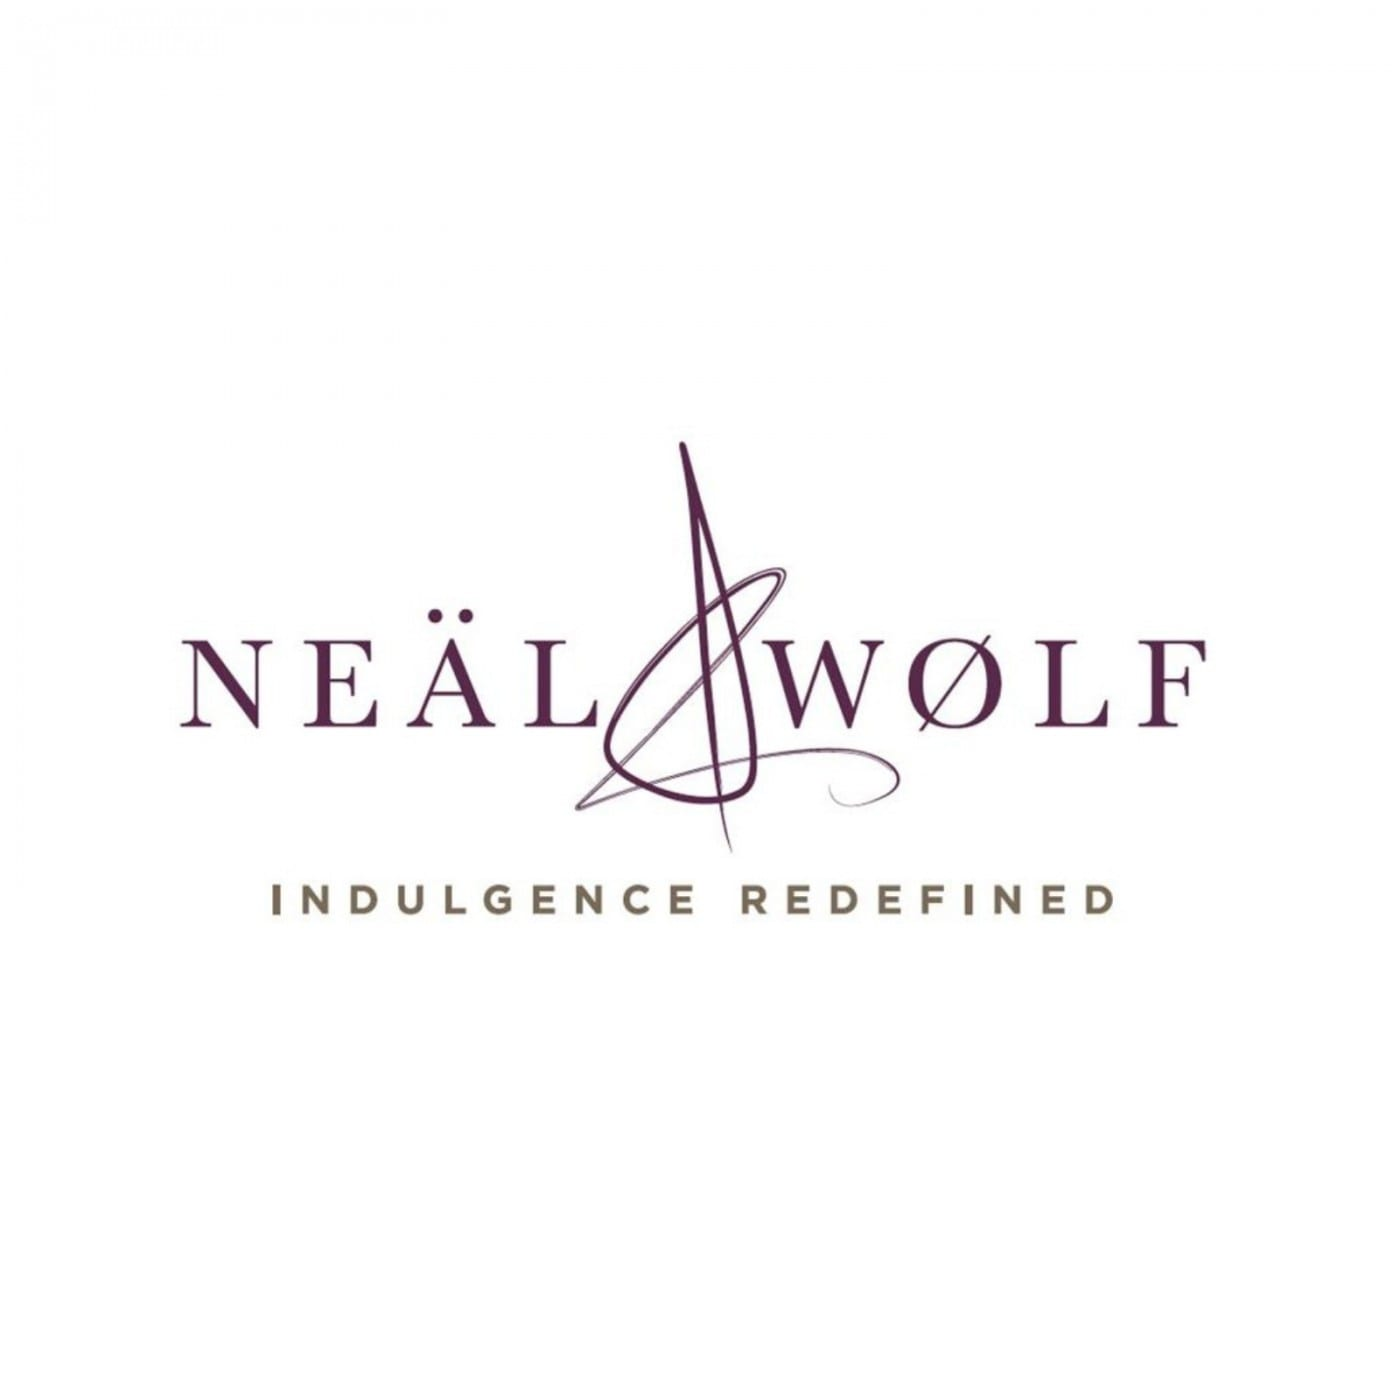 Neal And Wolf 12 Rope Handle Bags